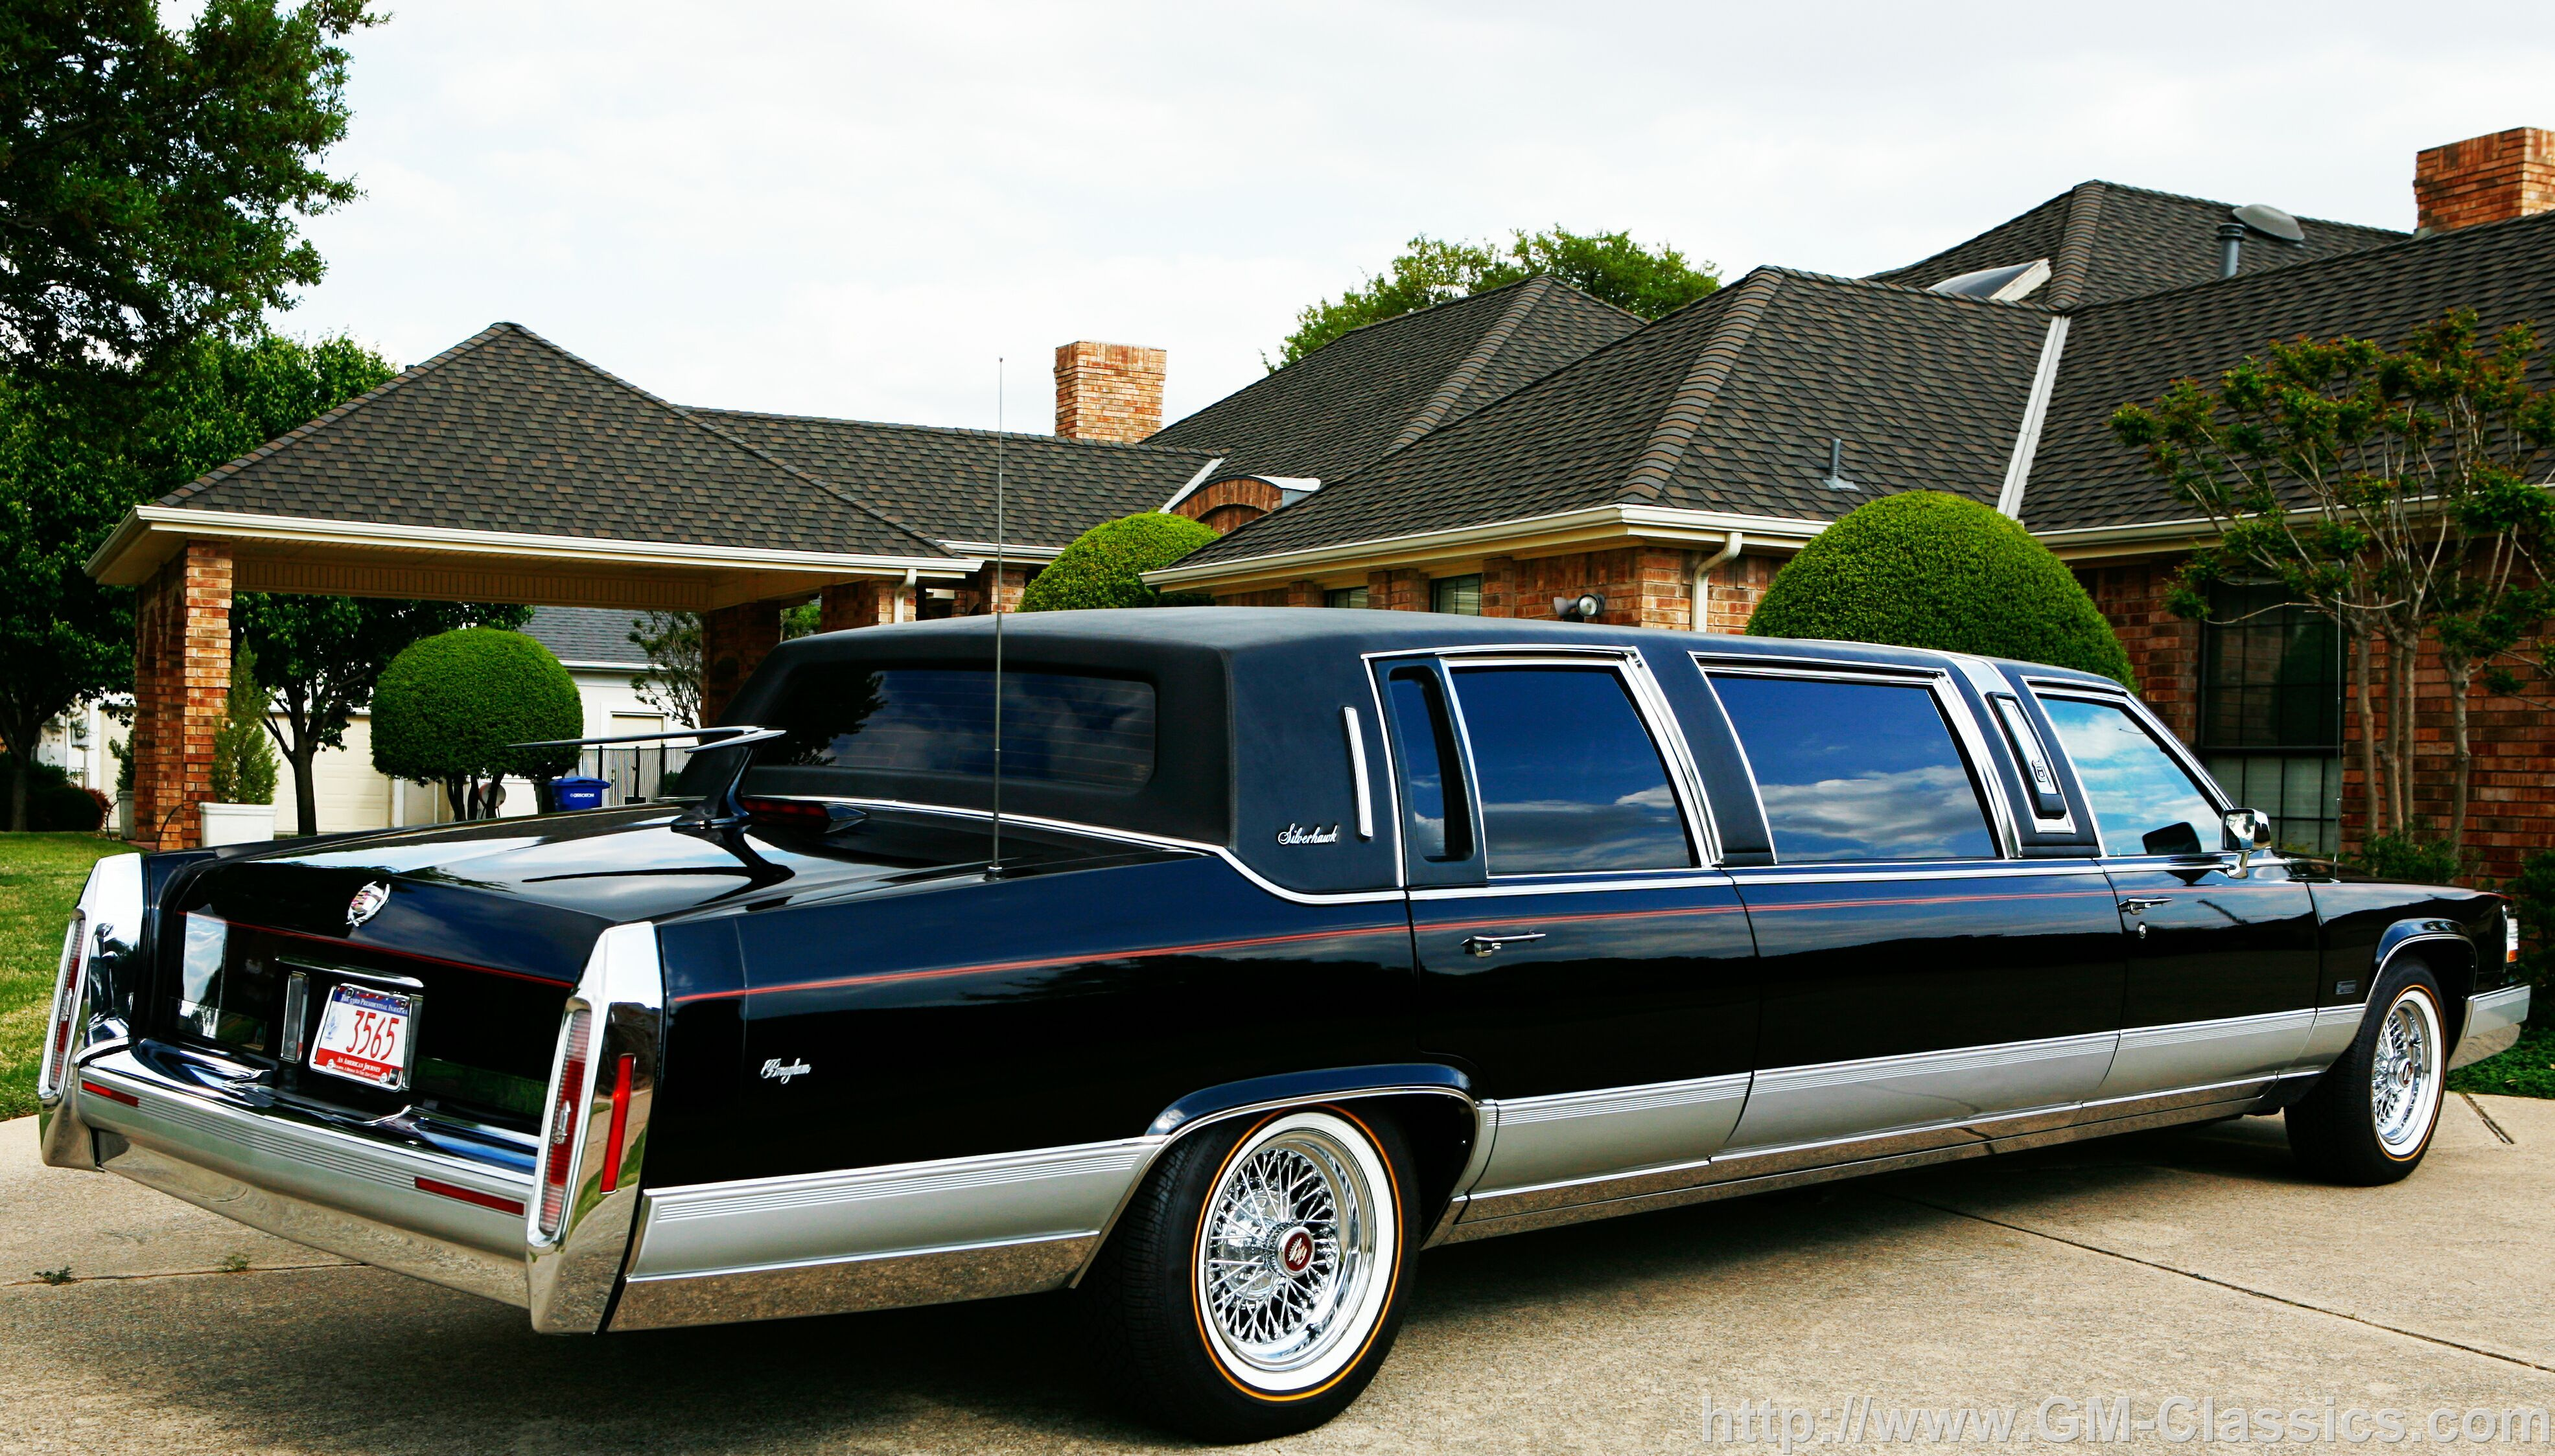 1990 Cadillac Brougham Limo For Sale I Just Came Across